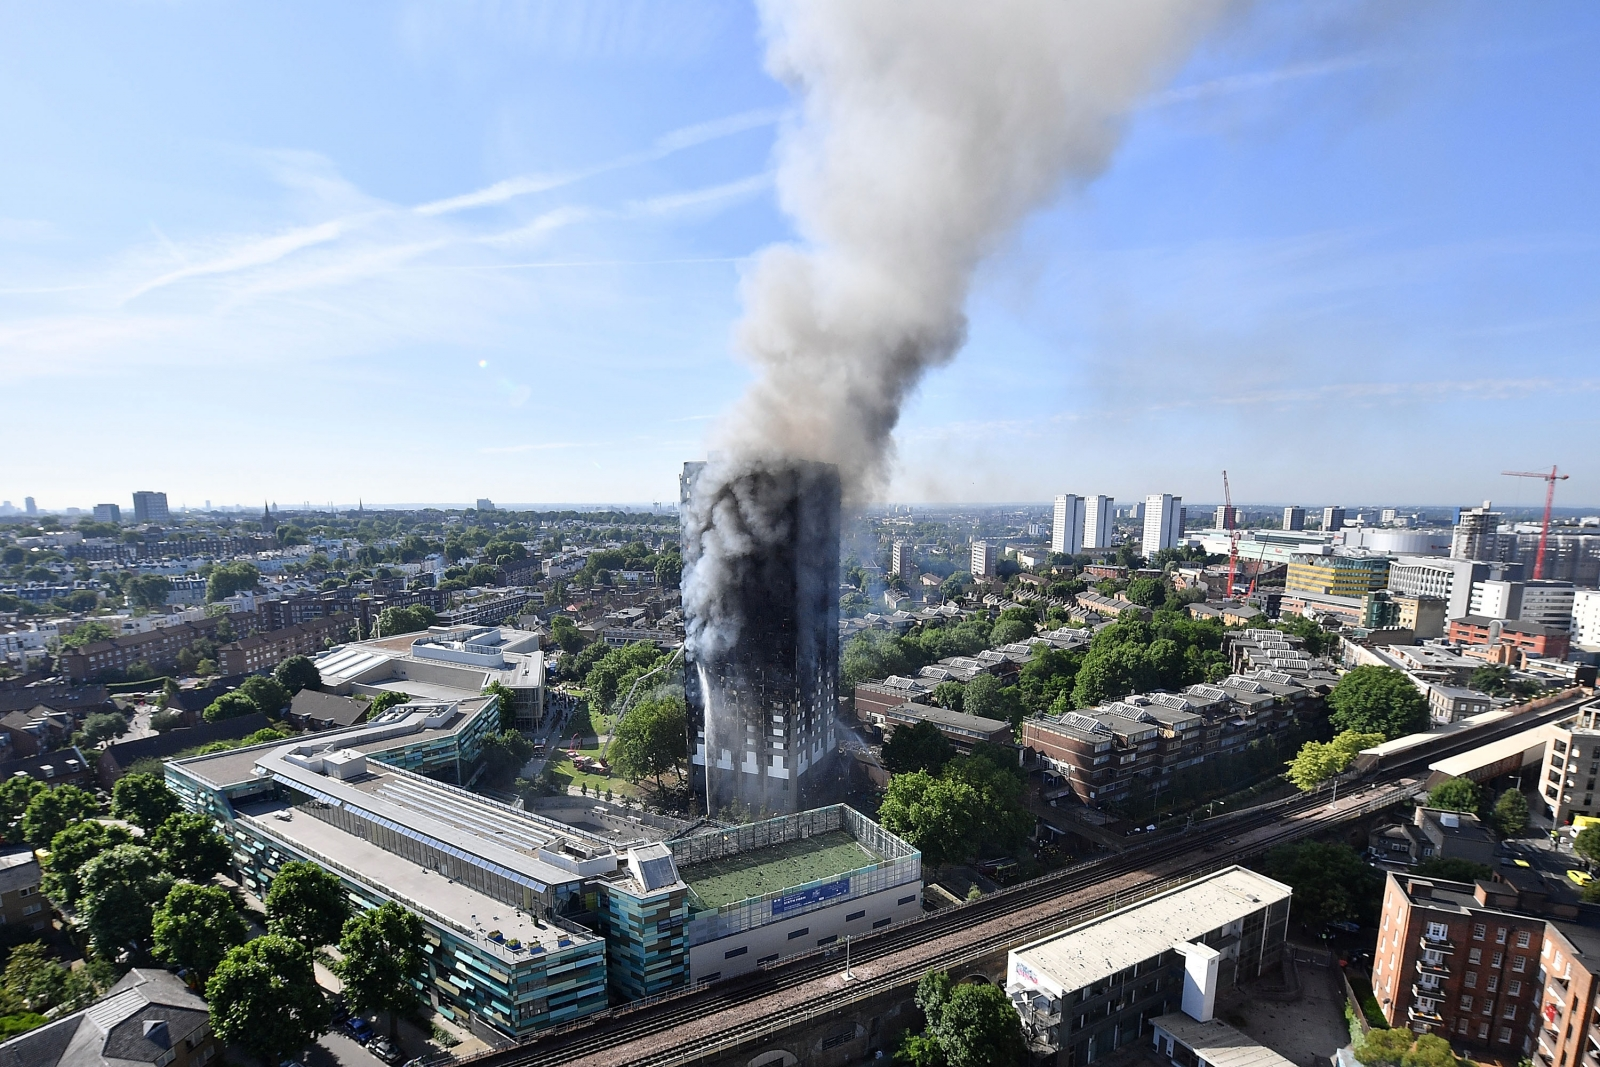 London Grenfell Tower Fire - Titel